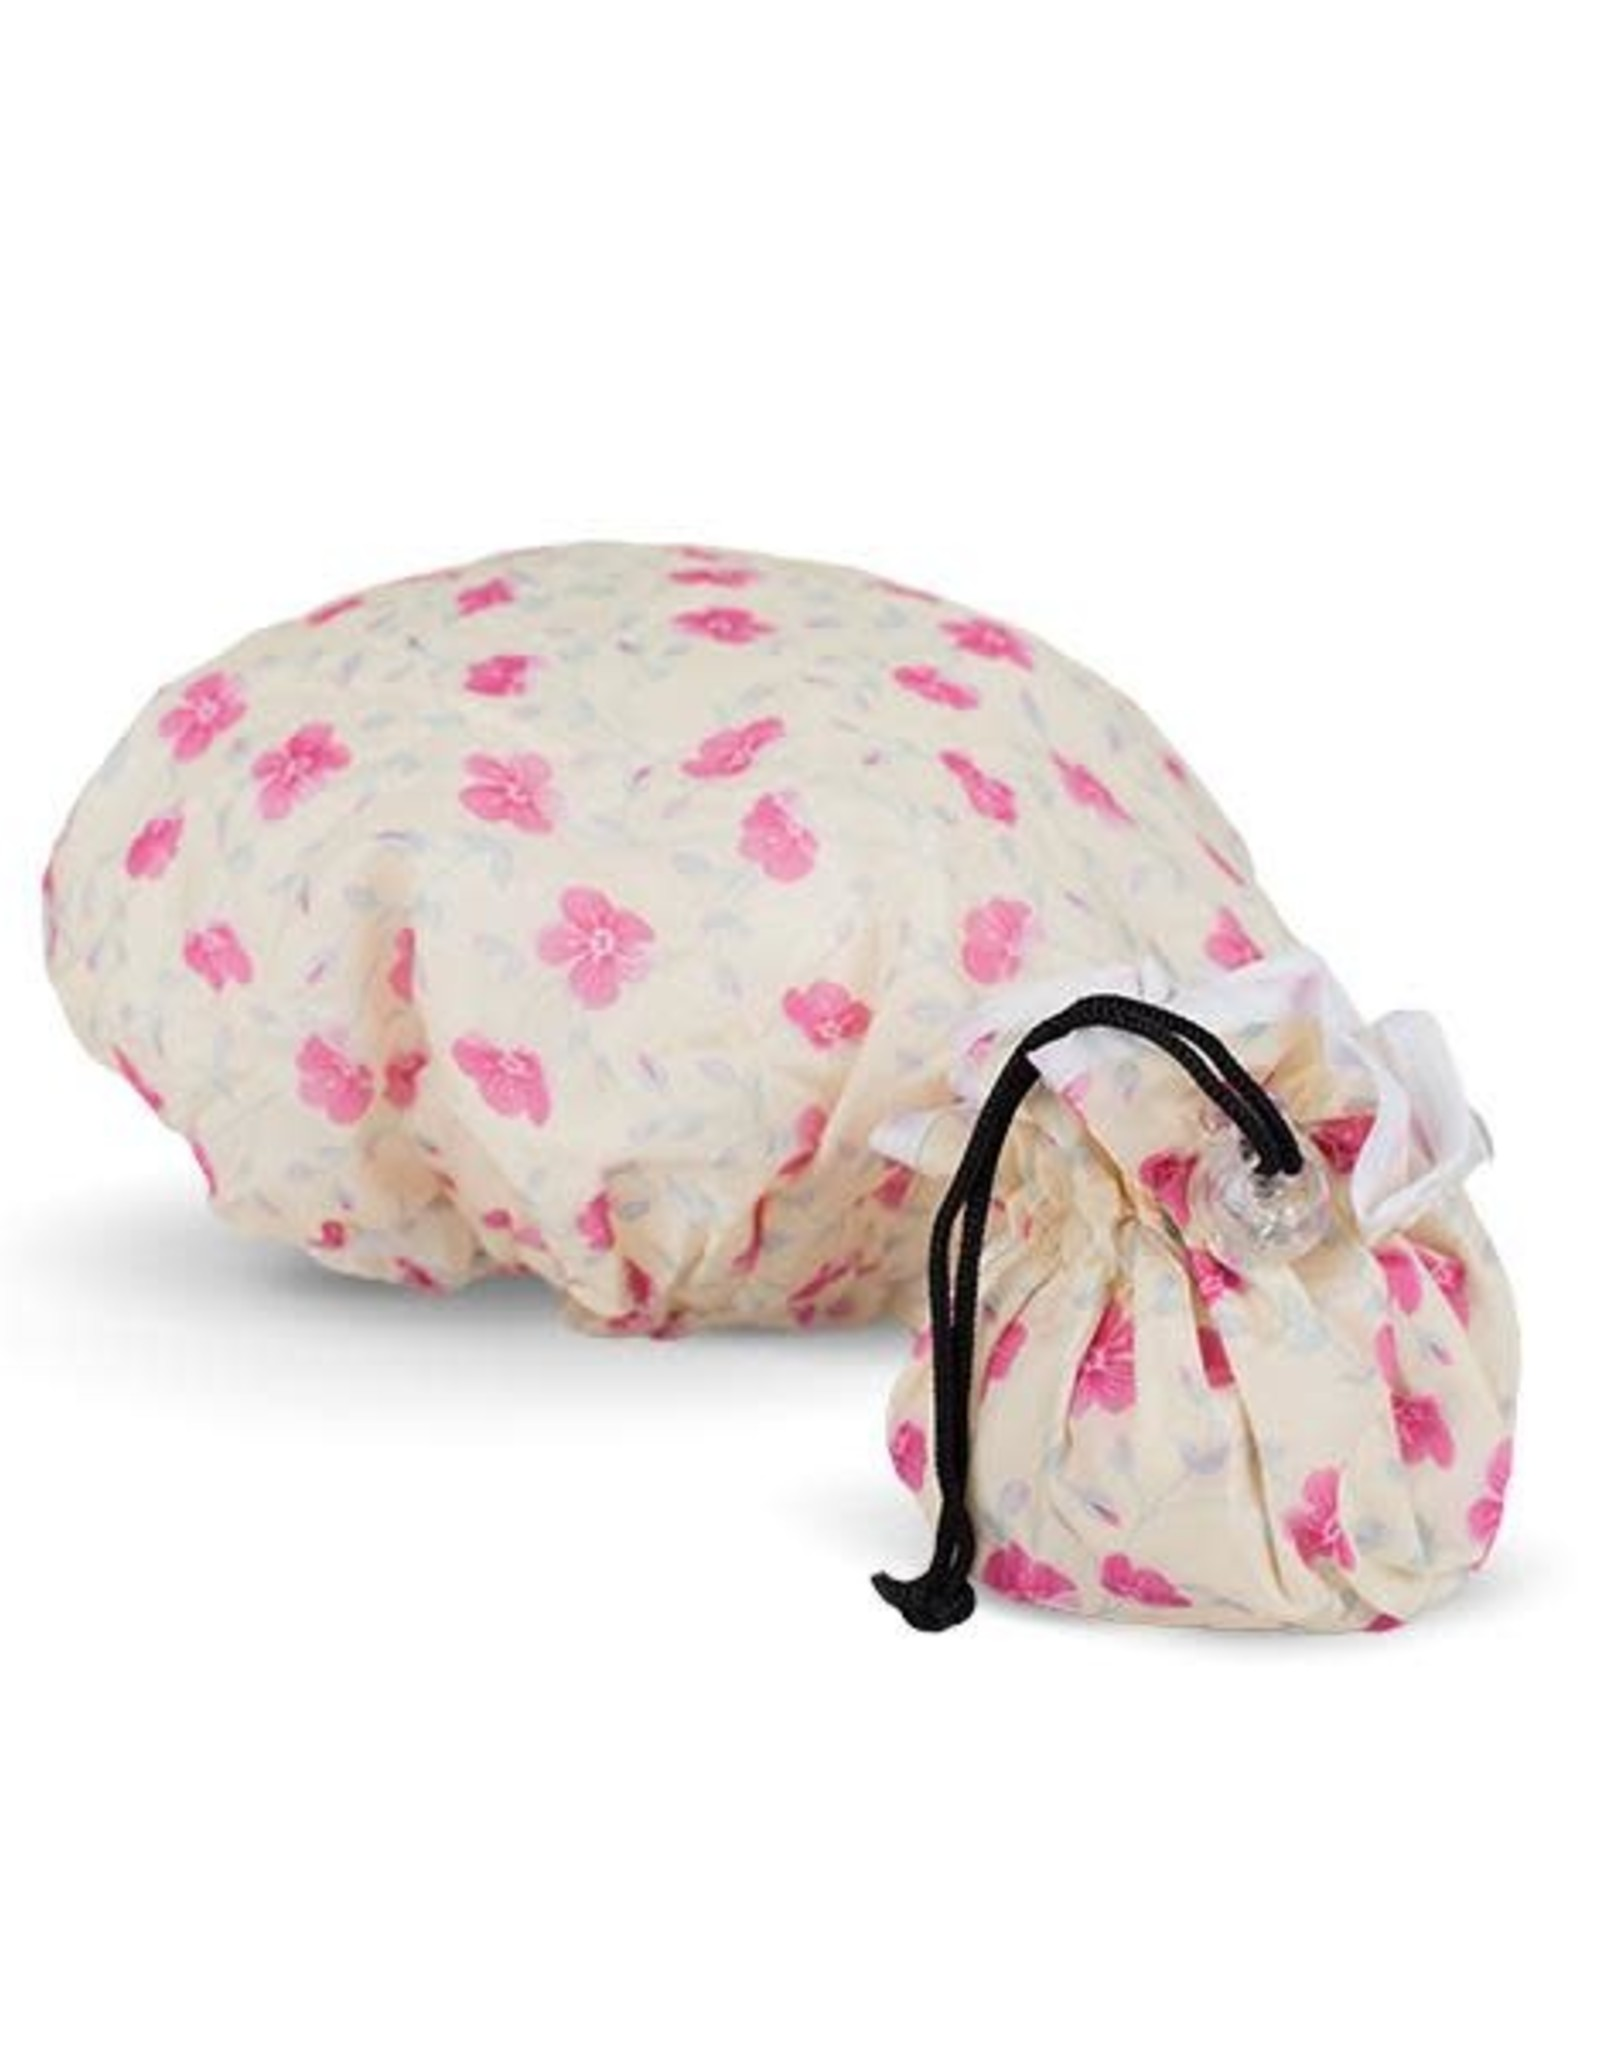 FinchBerry Soapery Shower Cap